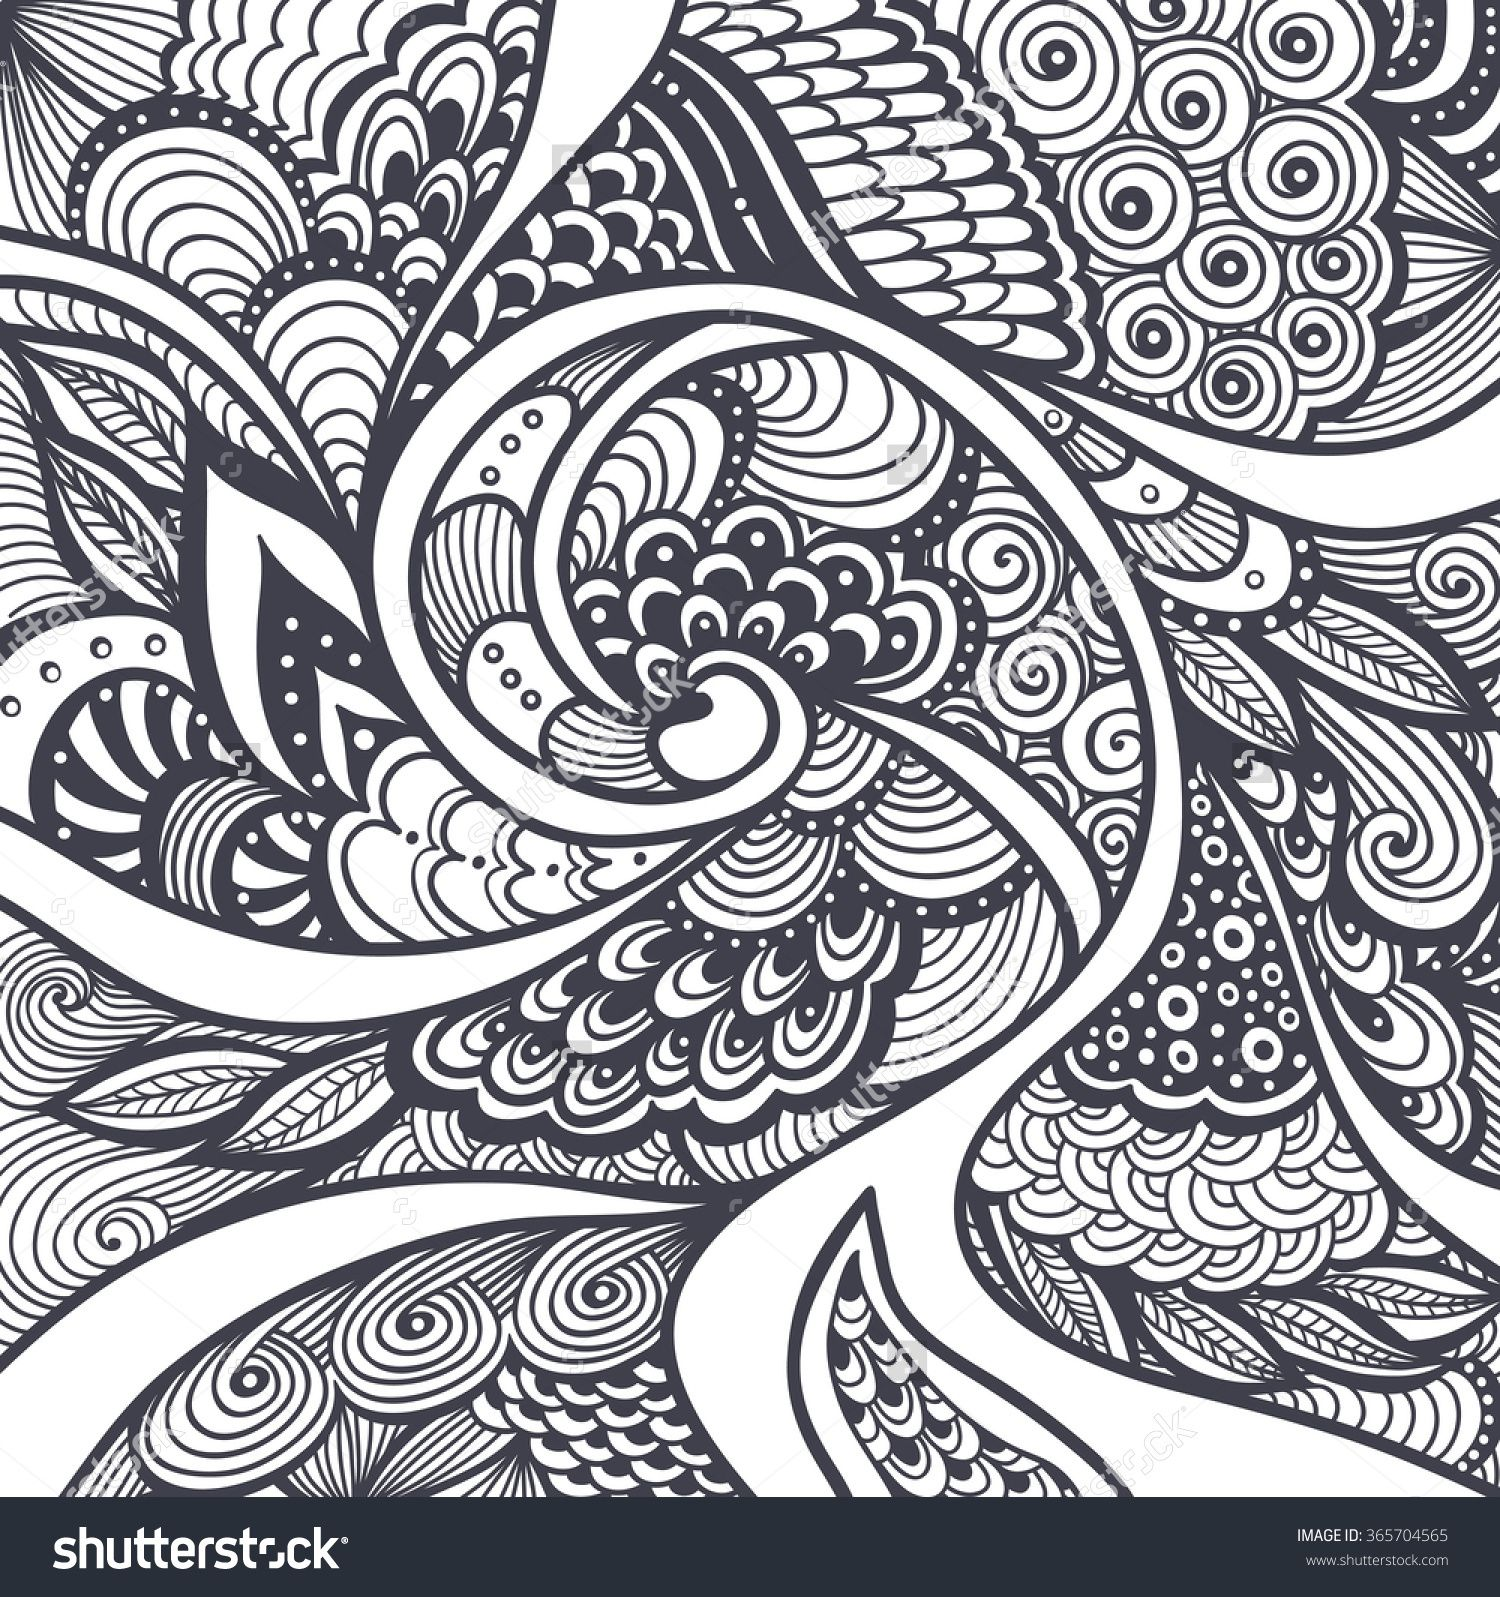 Abstract Pattern Or Texture In Zen Tangle Zen Doodle Style Black